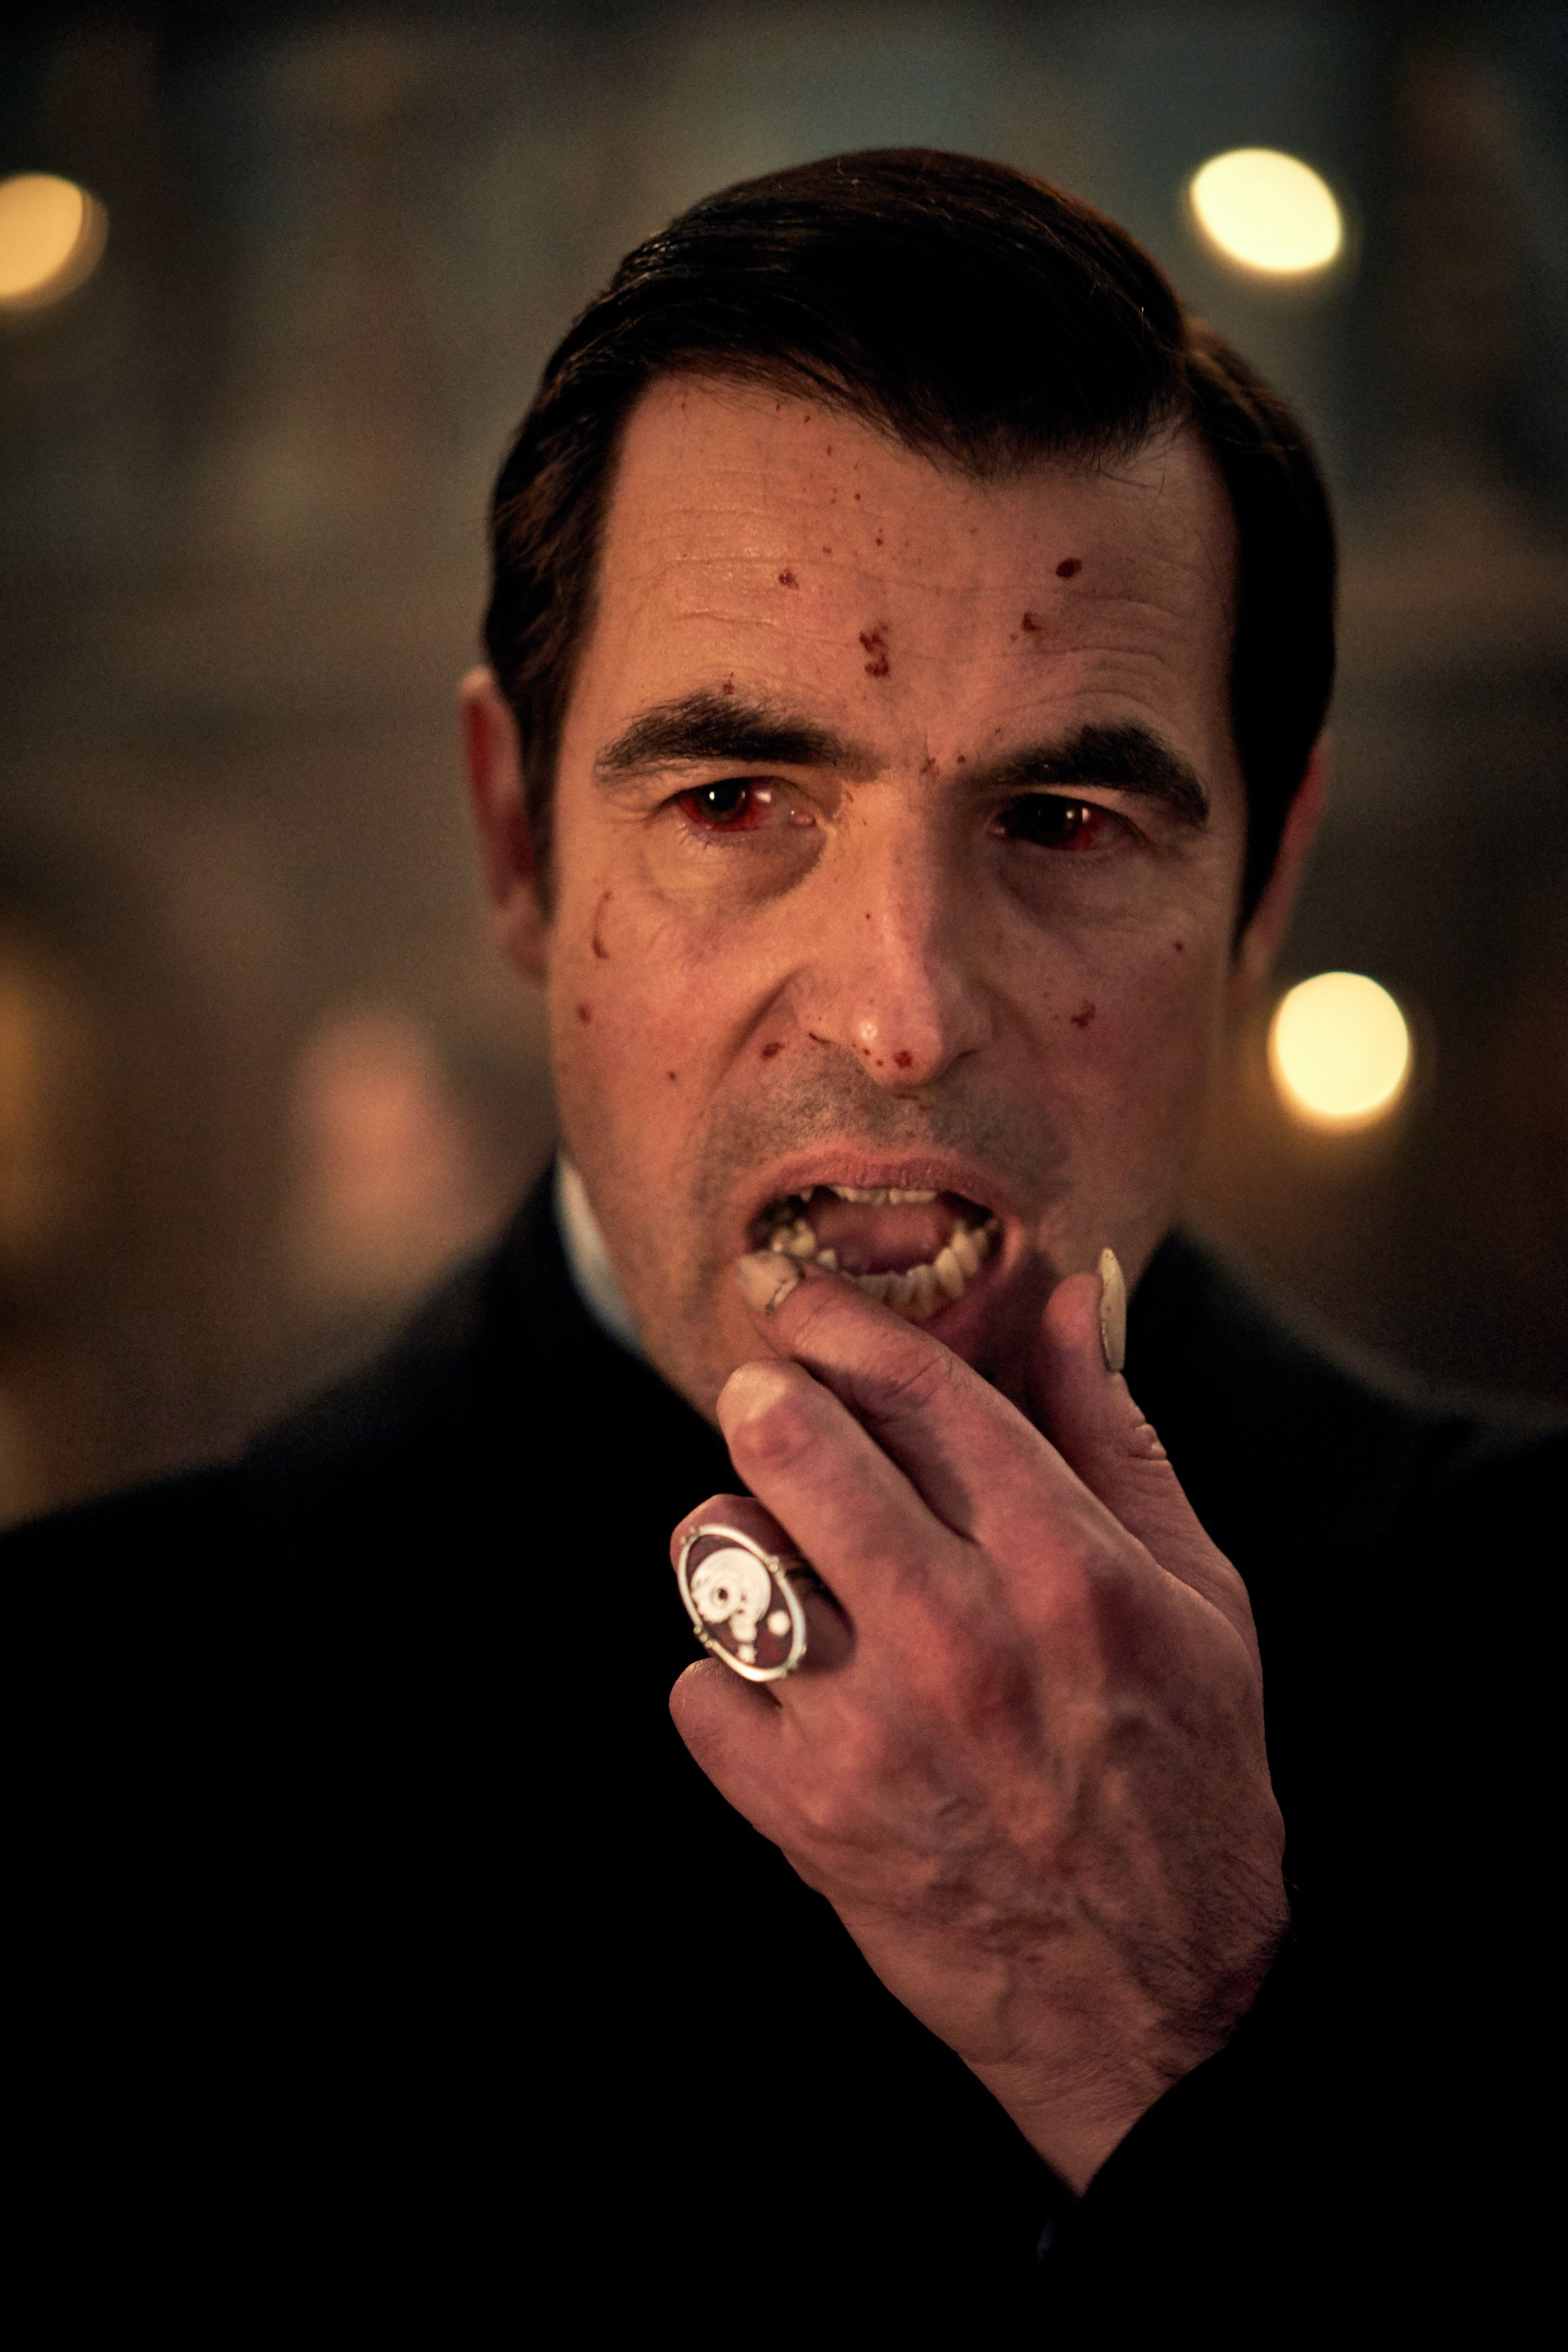 Dracula Season 2. Will it be coming? Plot, When and whereabouts of Season 2